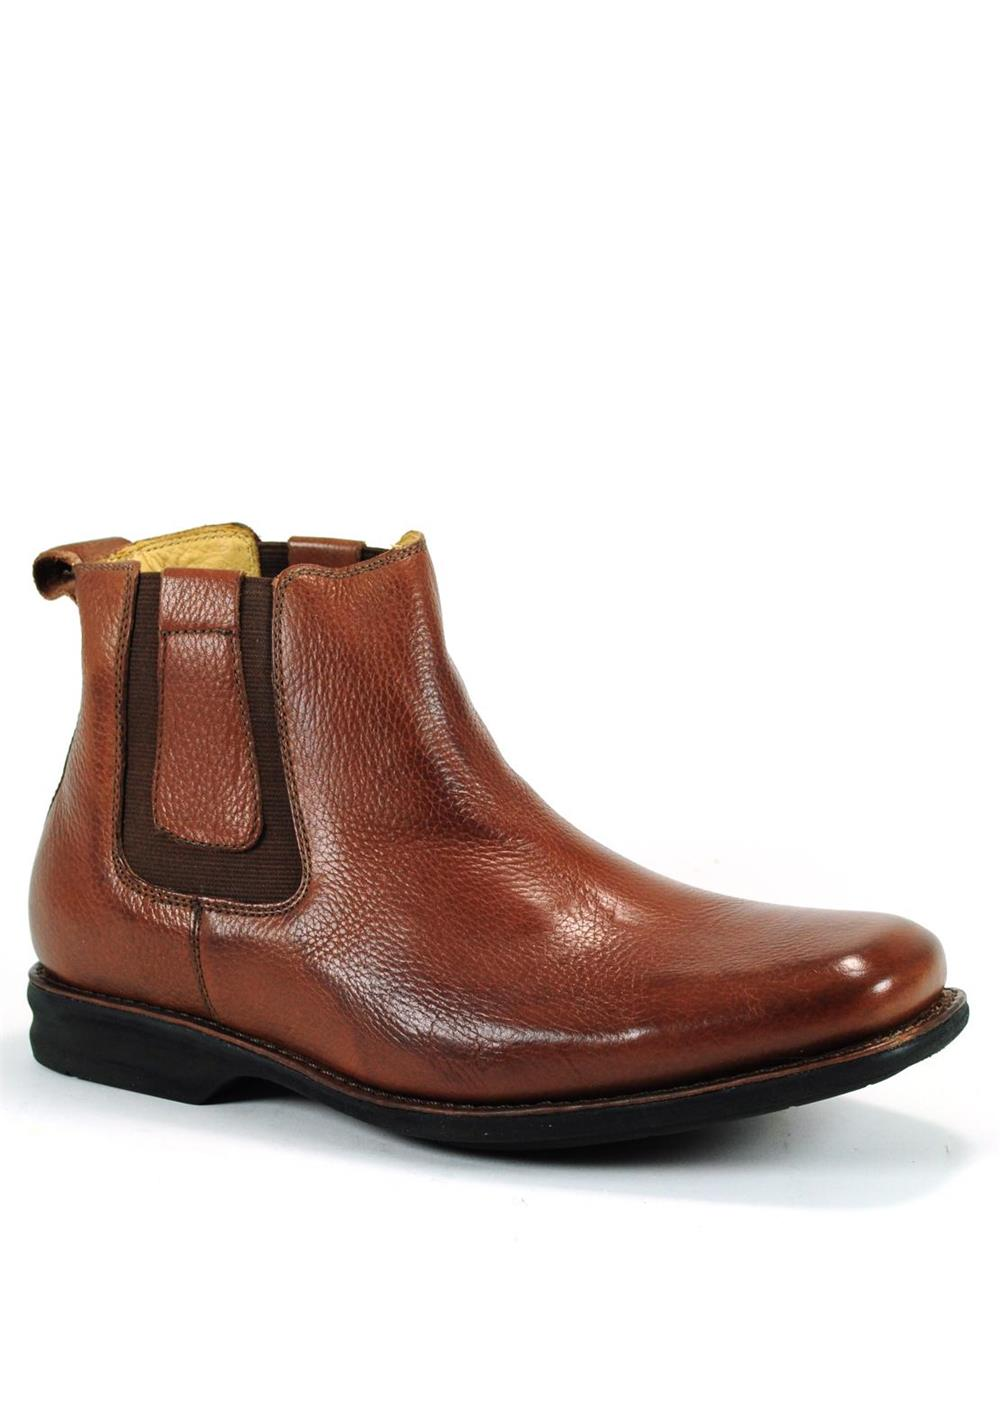 Anatomic & Co Mens Amazonas Chelsea Leather Boot, Tan